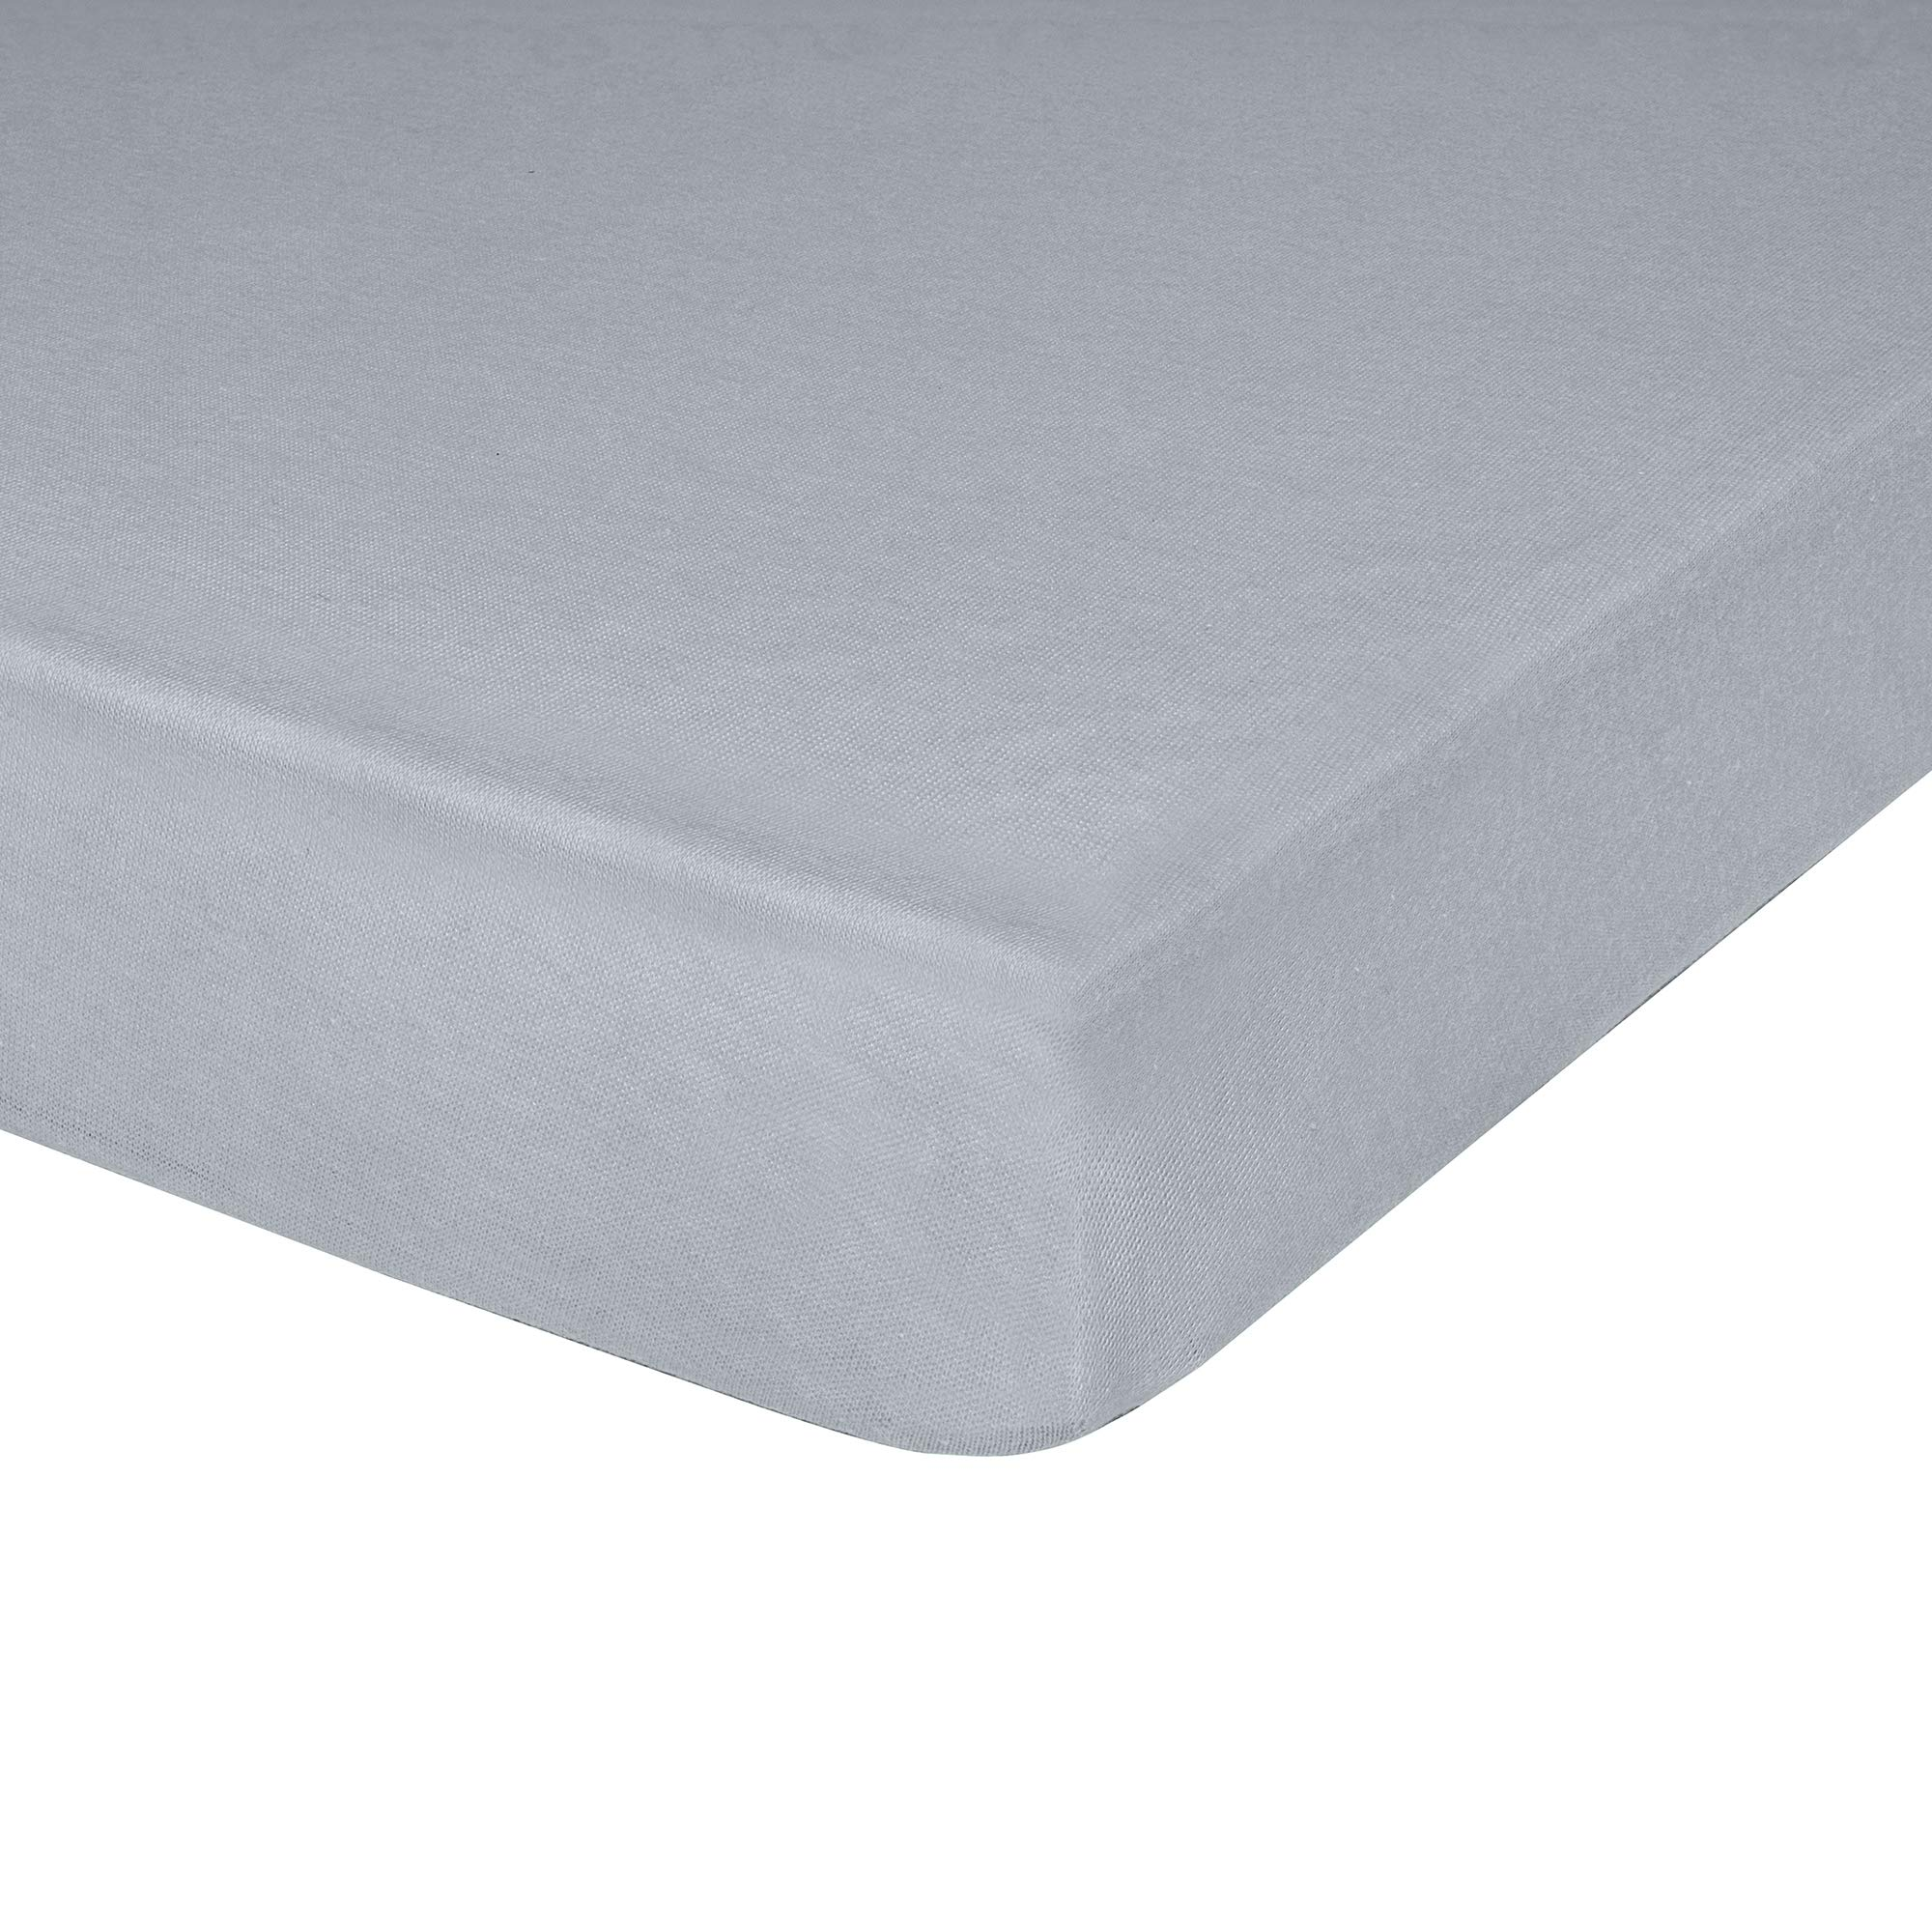 Jersey Knit Fitted Cot Sheet, 33'' X 75'', Deep Pocket, Ideal for Cot Size Bed, Hypoallergenic, Grey, Pack of 1 by IdeaHome